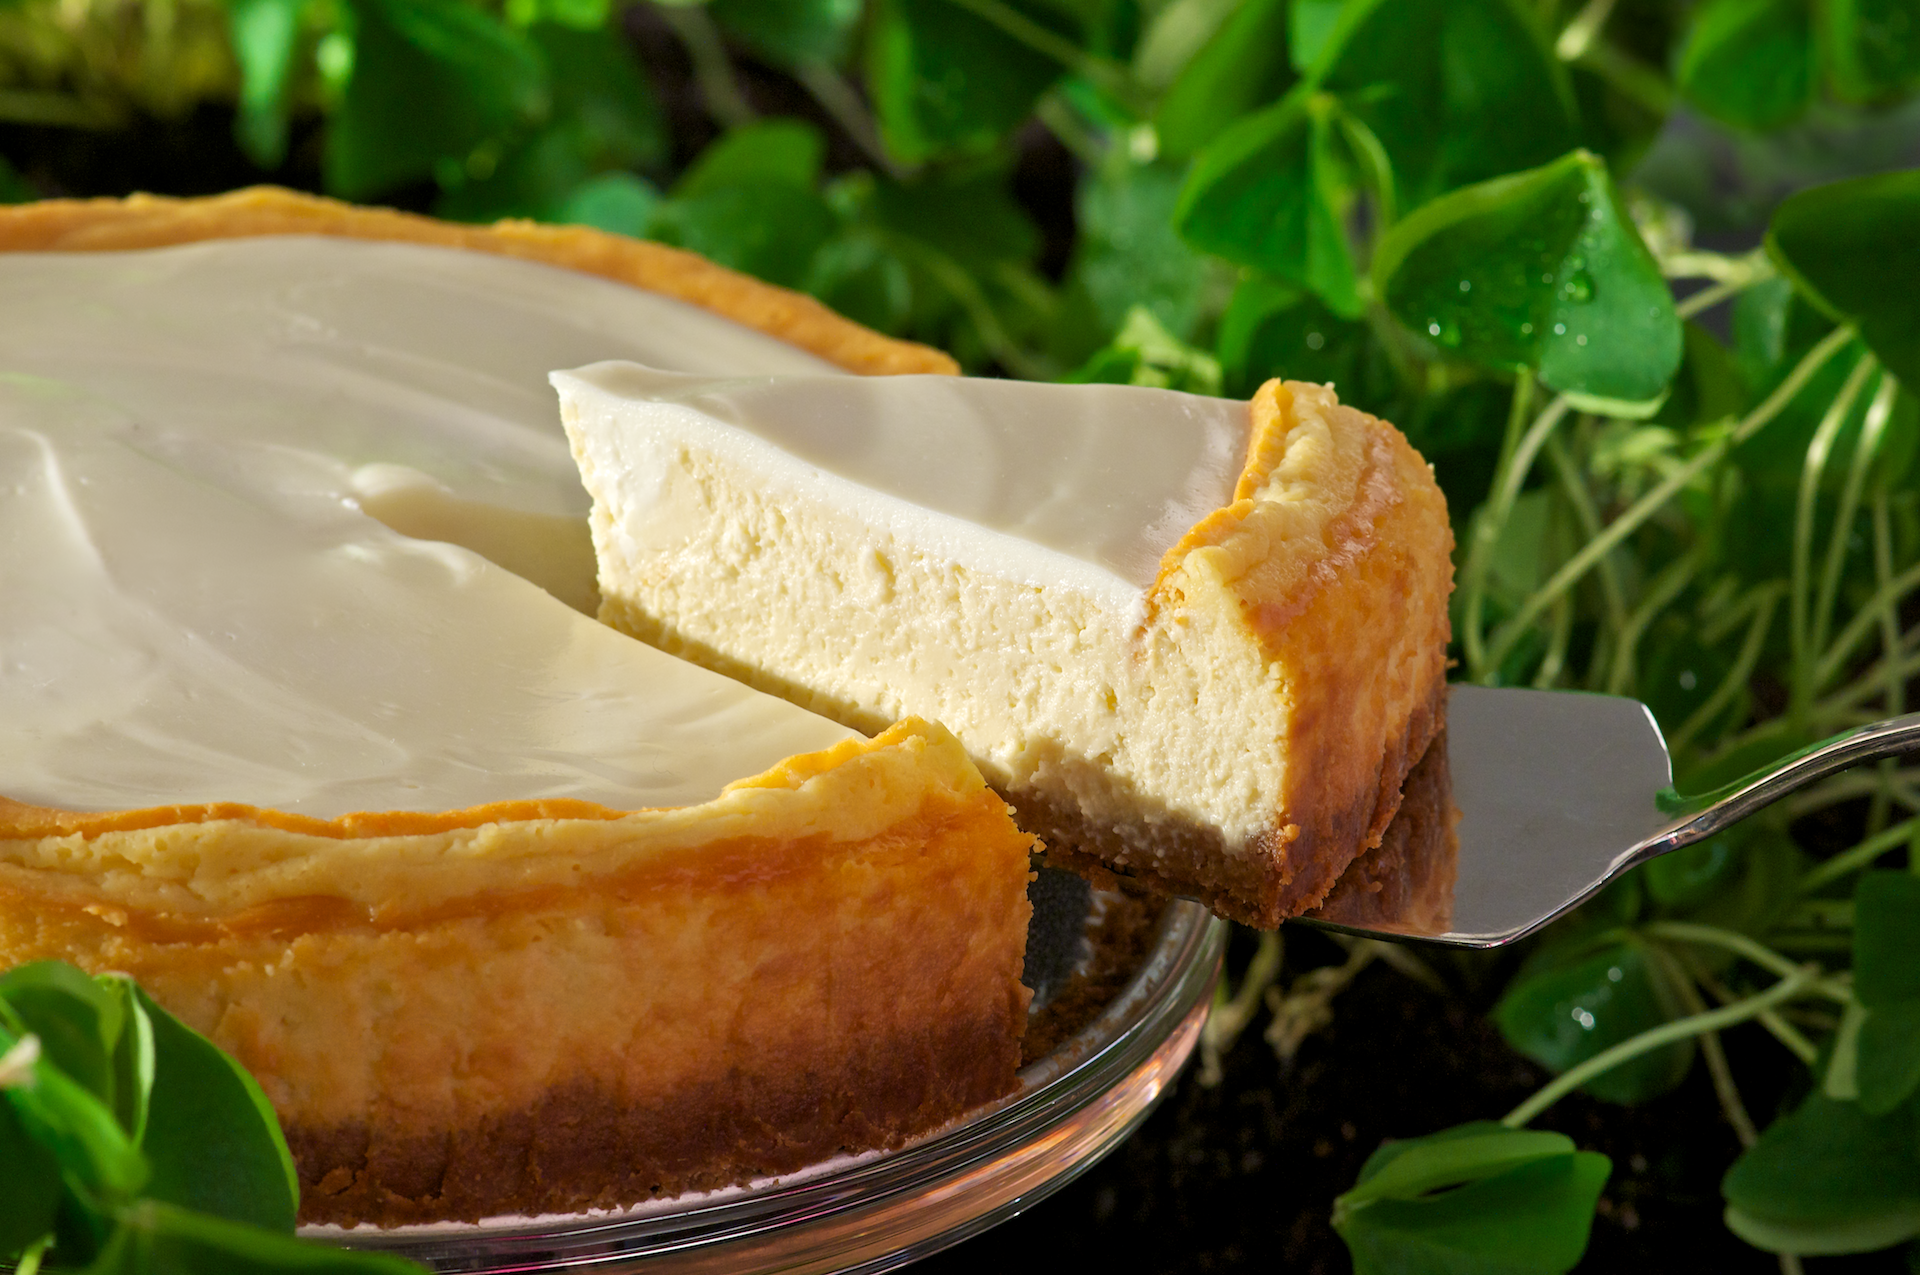 This indulgently delectable cheesecake offers a wonderful balance of Irish Cream liqueur and cream cheese topped with a sweetened sour cream. This recipe would be an ideal choice for a St. Patrick's Day dessert.